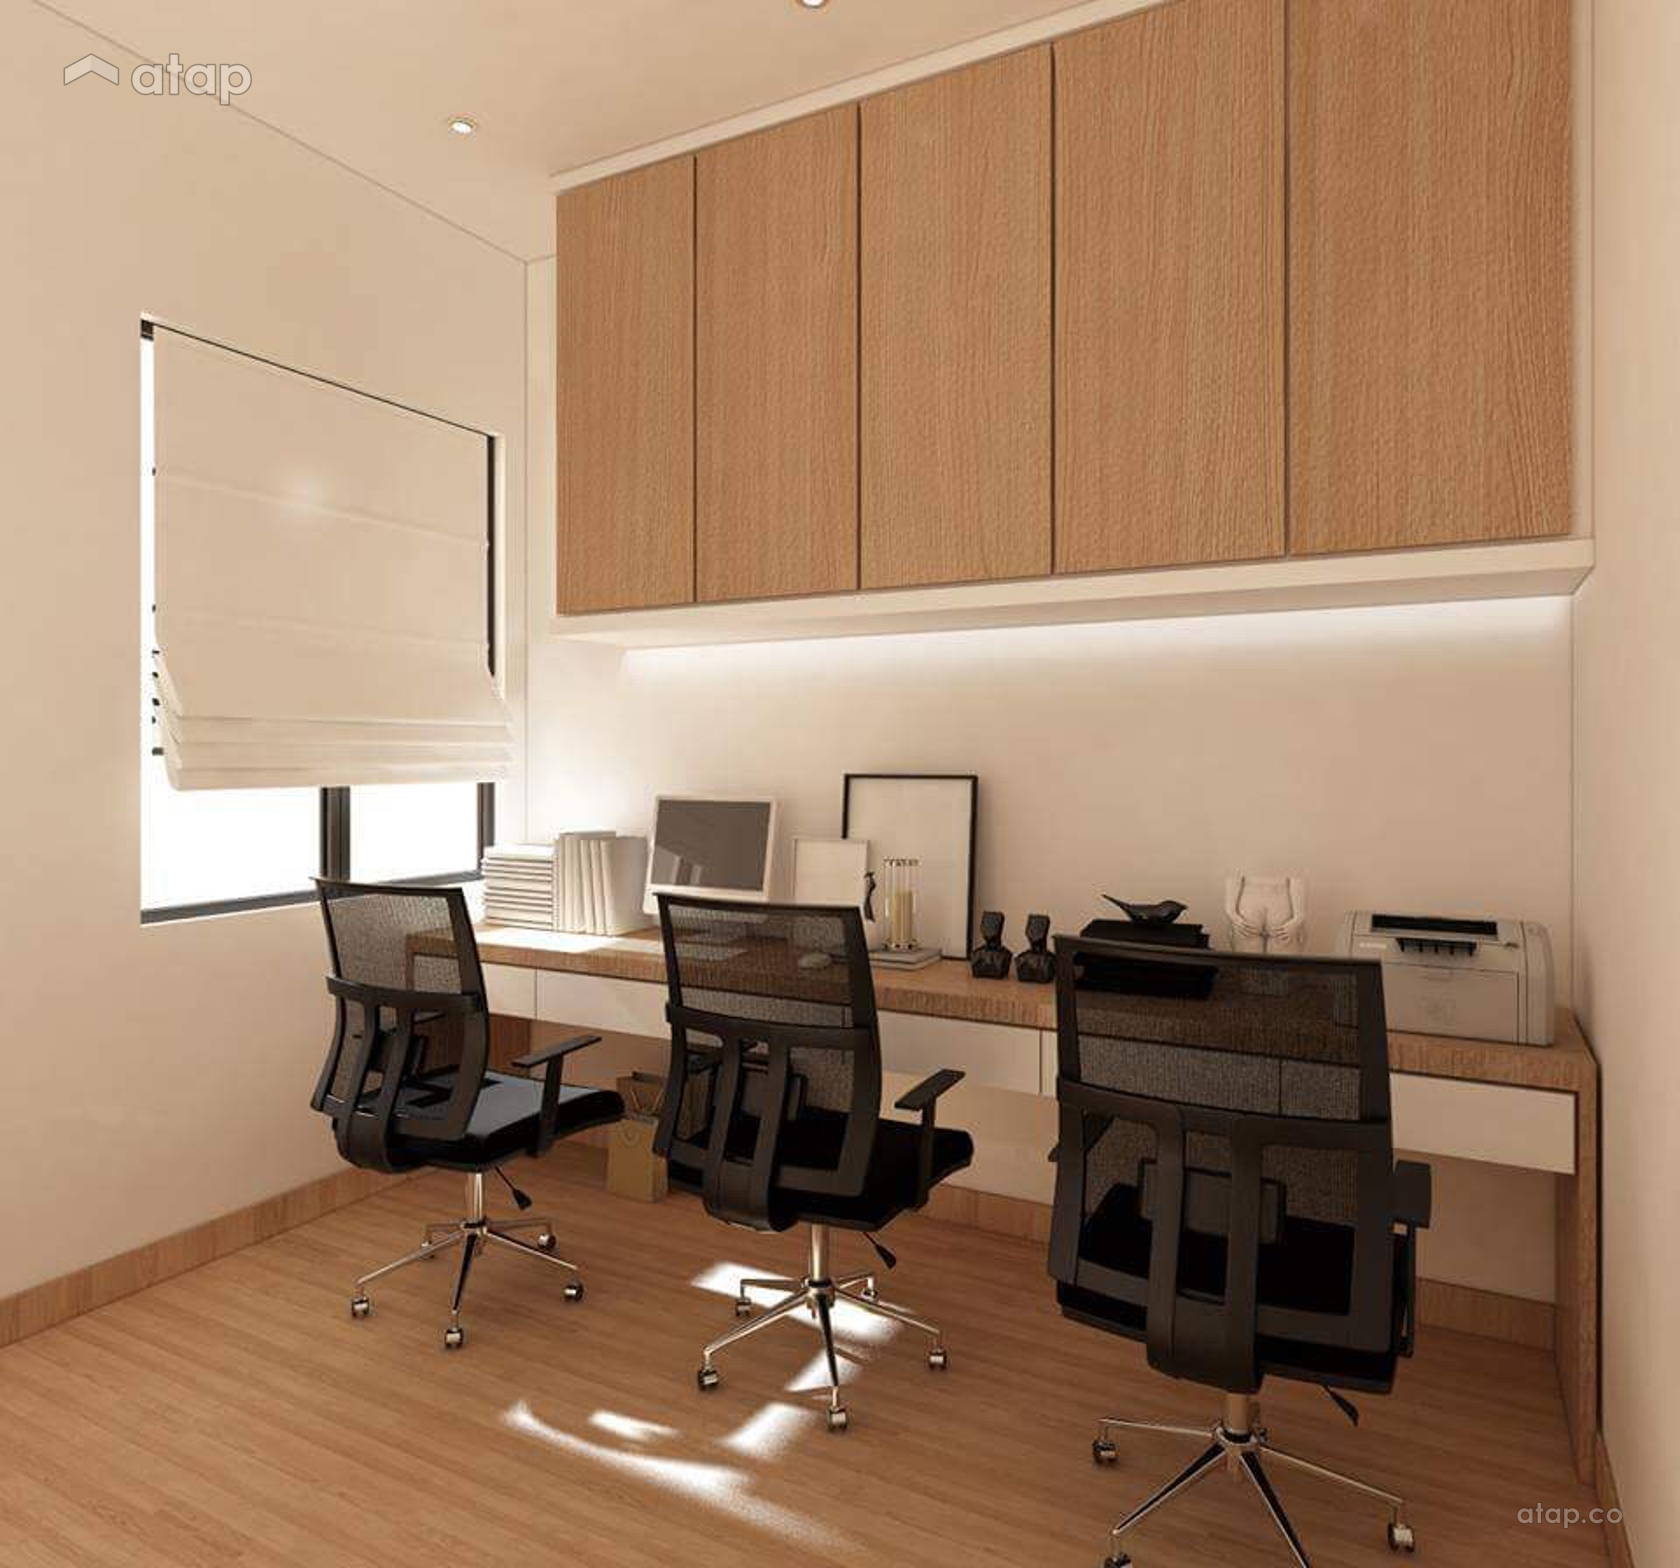 Study Room Interior Design Ideas 1 Study Room Interior: Study Room Condominium Design Ideas & Photos Malaysia